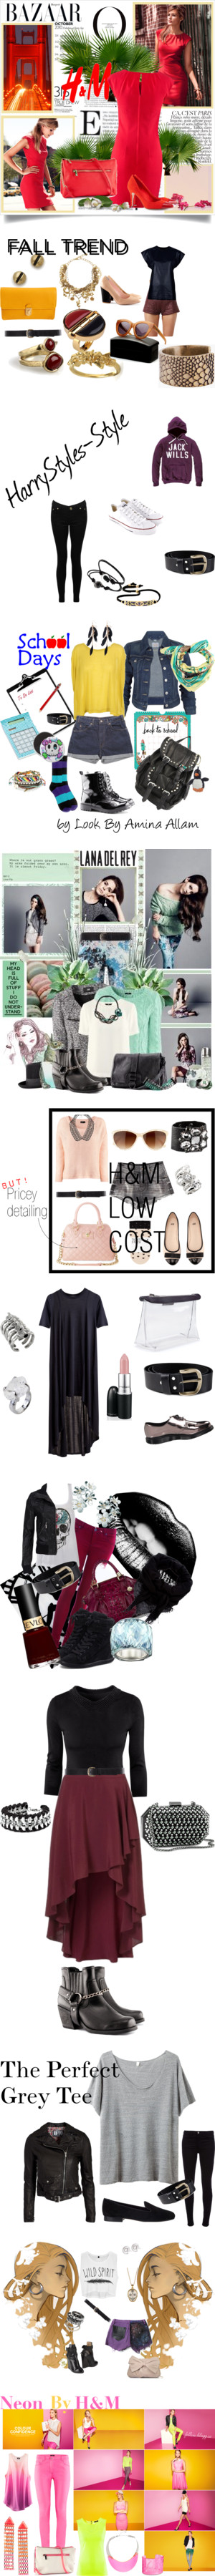 """""""13 HONESTY KEEPS YOU - HM Bag, Earrings & Belt"""" by ronit-weinstein ❤ liked on Polyvore"""